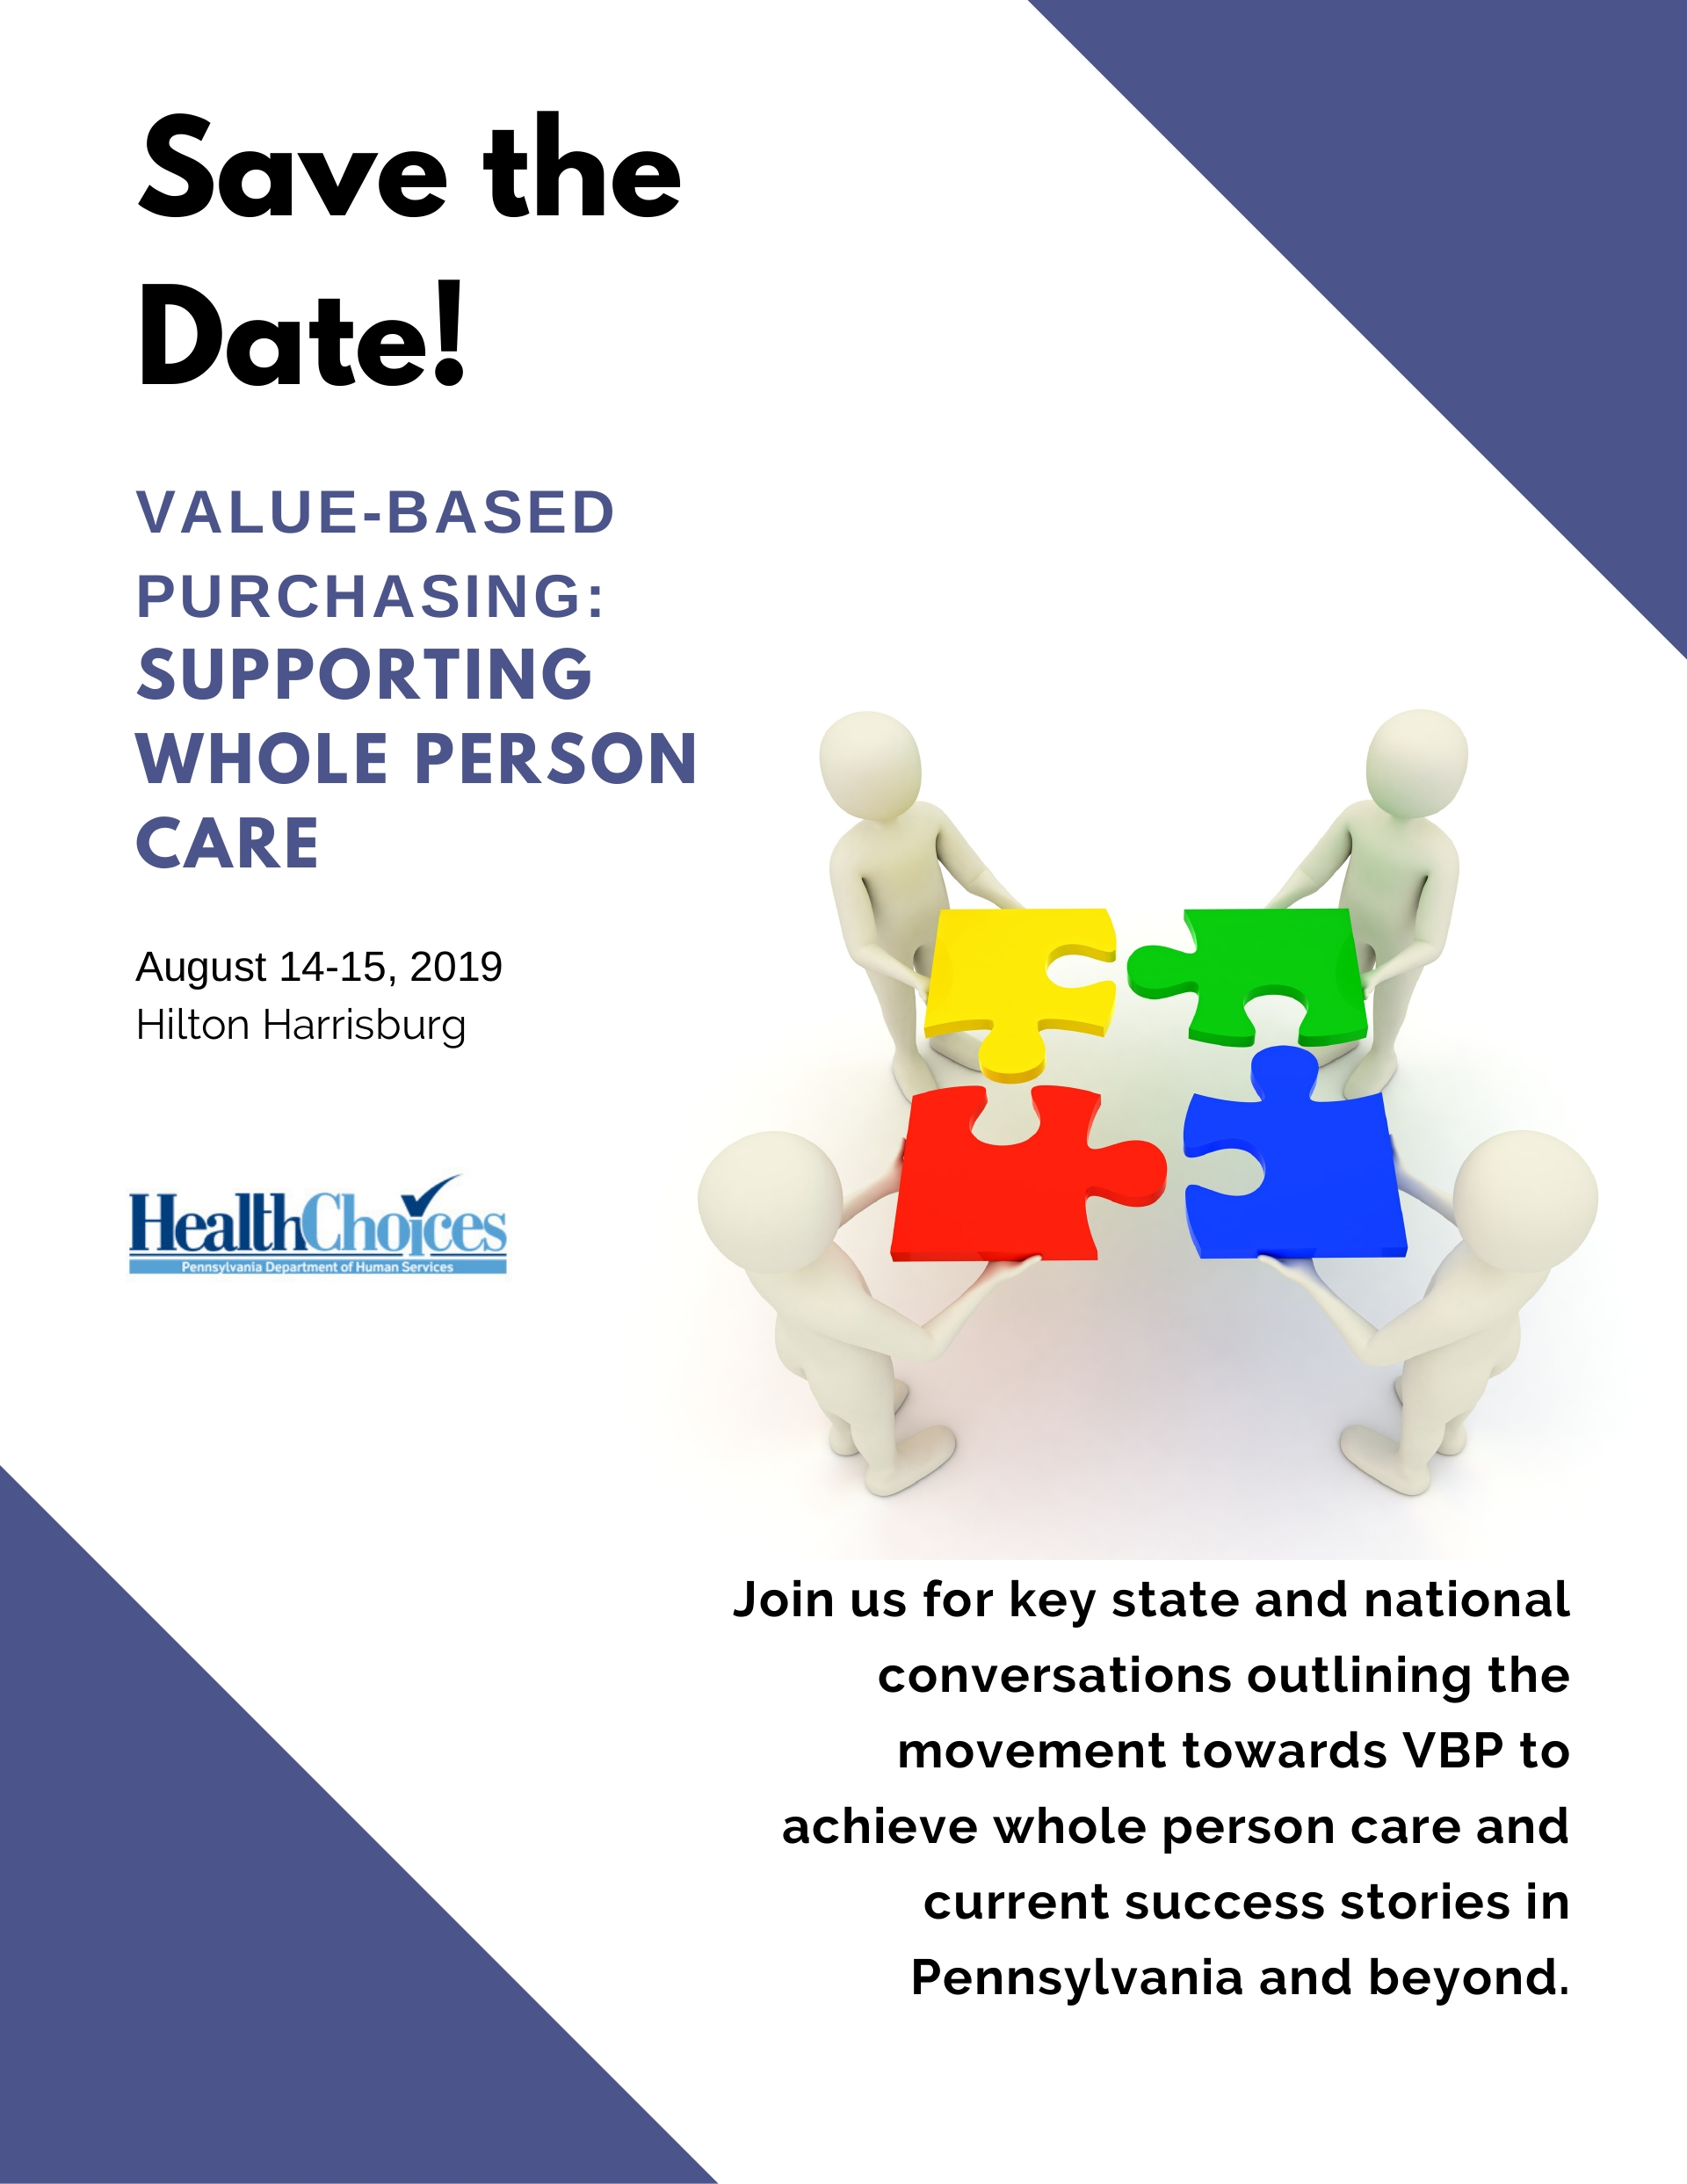 CONFERENCE   Value Based Purchasing Conference  August 2019